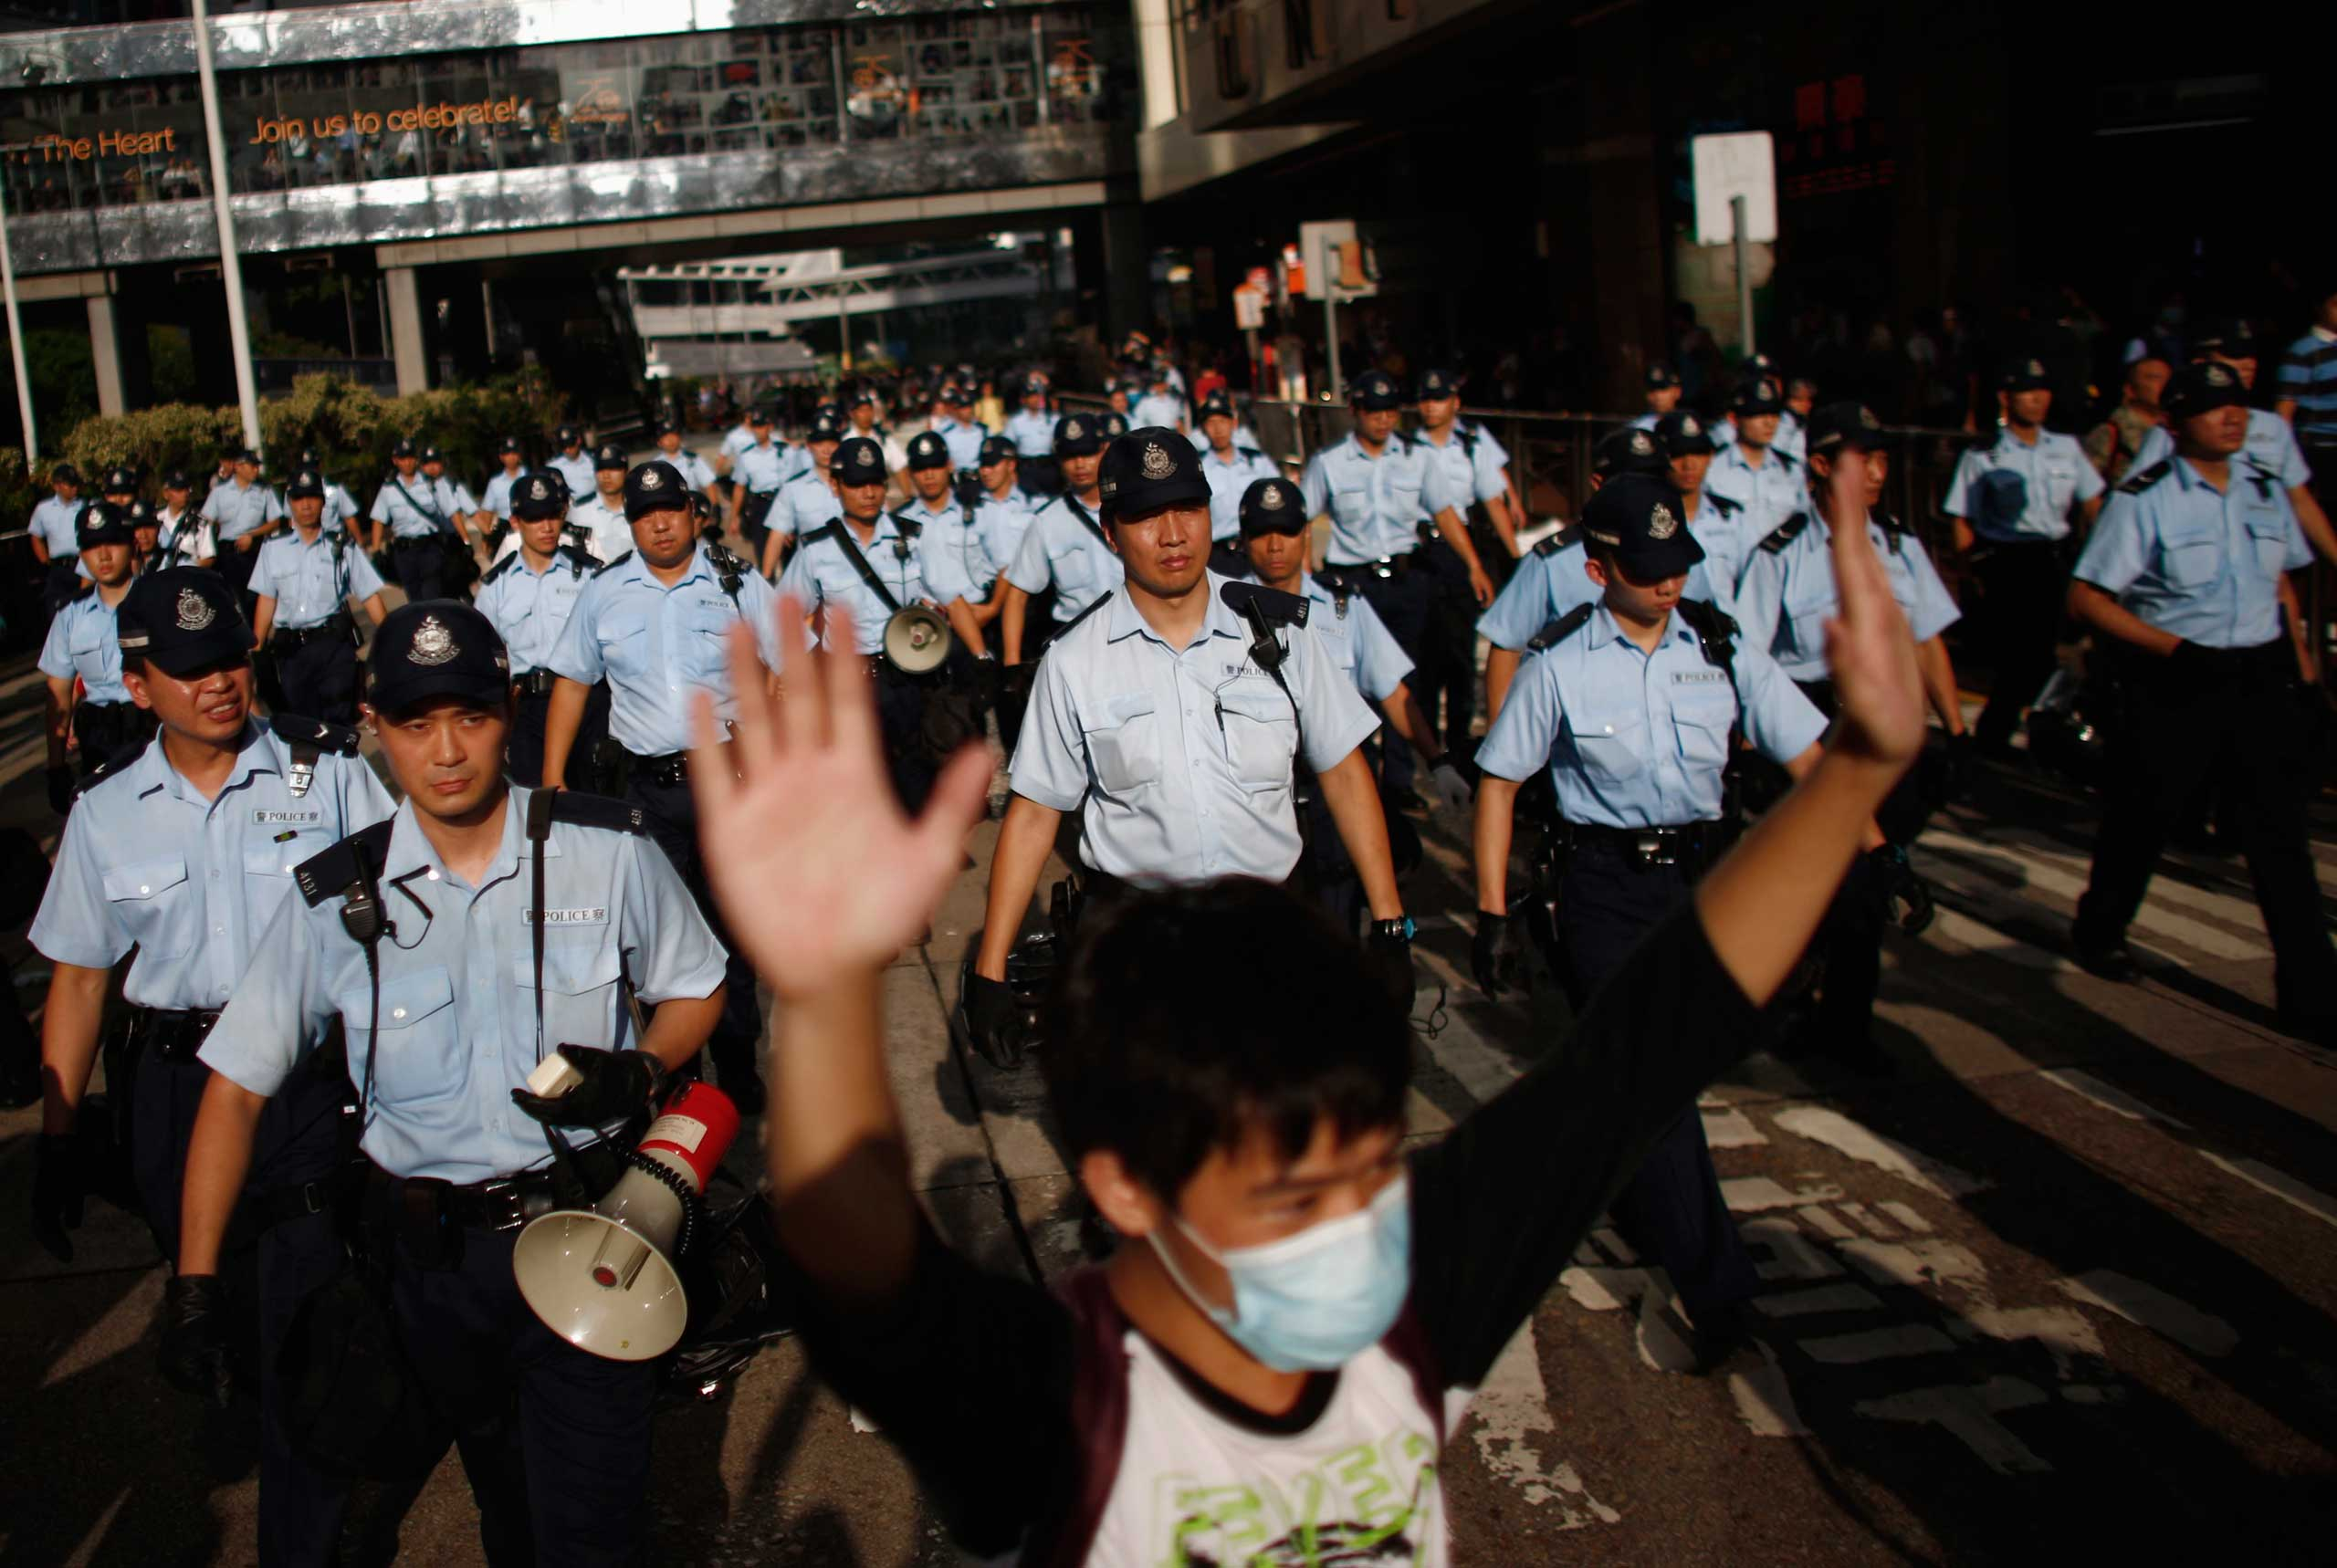 A protester raises his arms as police officers try to disperse the crowd near the government headquarters in Hong Kong, Sept. 29, 2014.